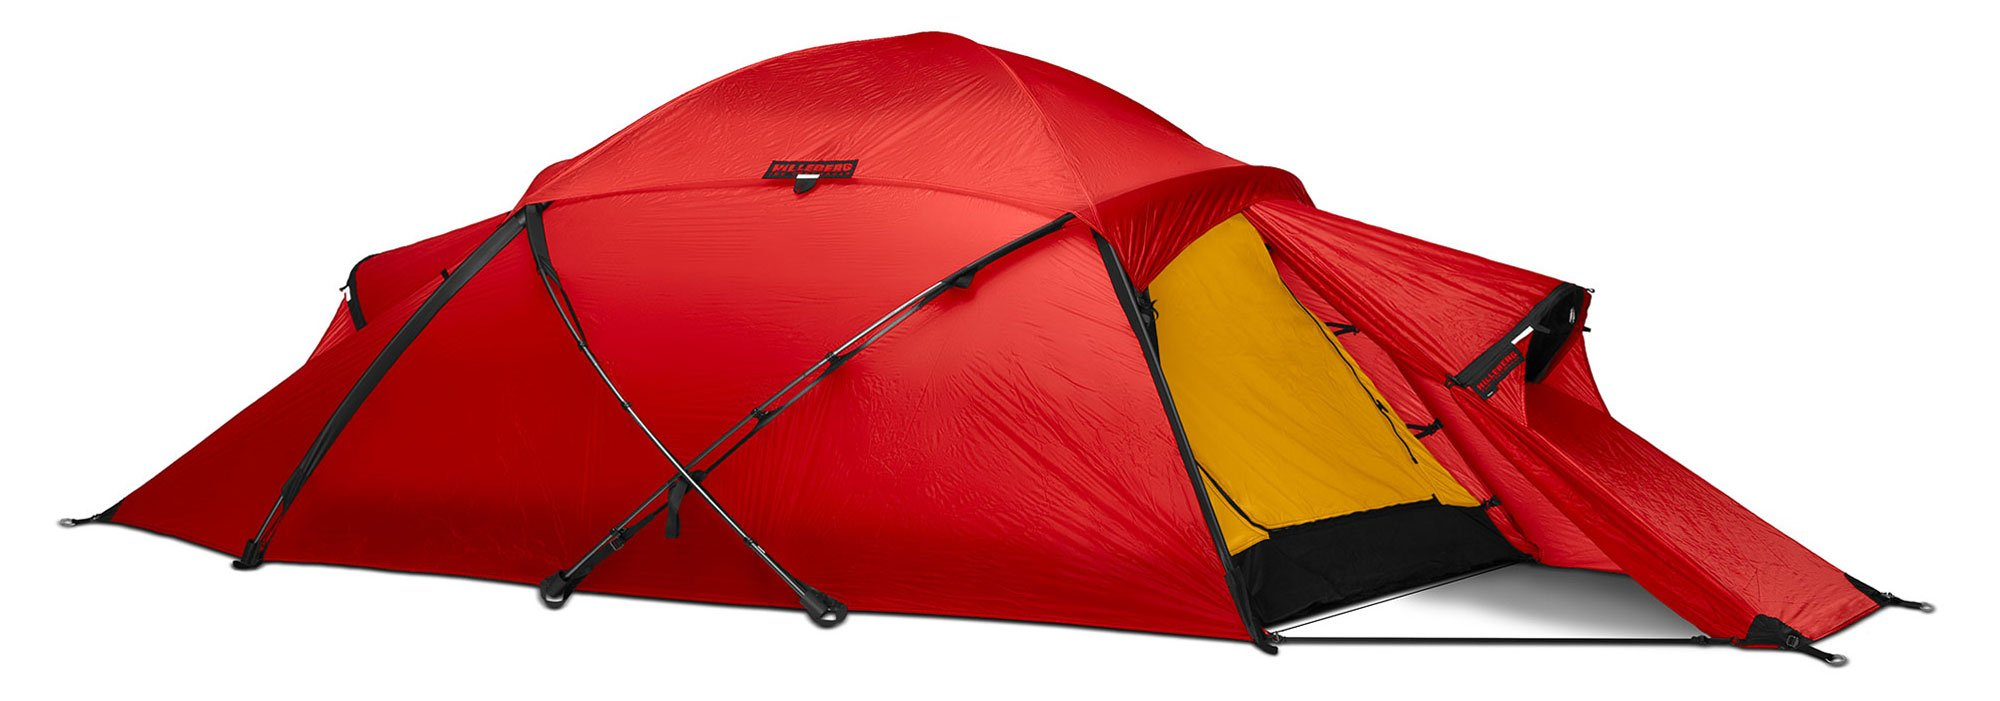 Hilleberg Saivo, Mountaineering Shelter, Red color Tent by Hilleberg (Image #1)